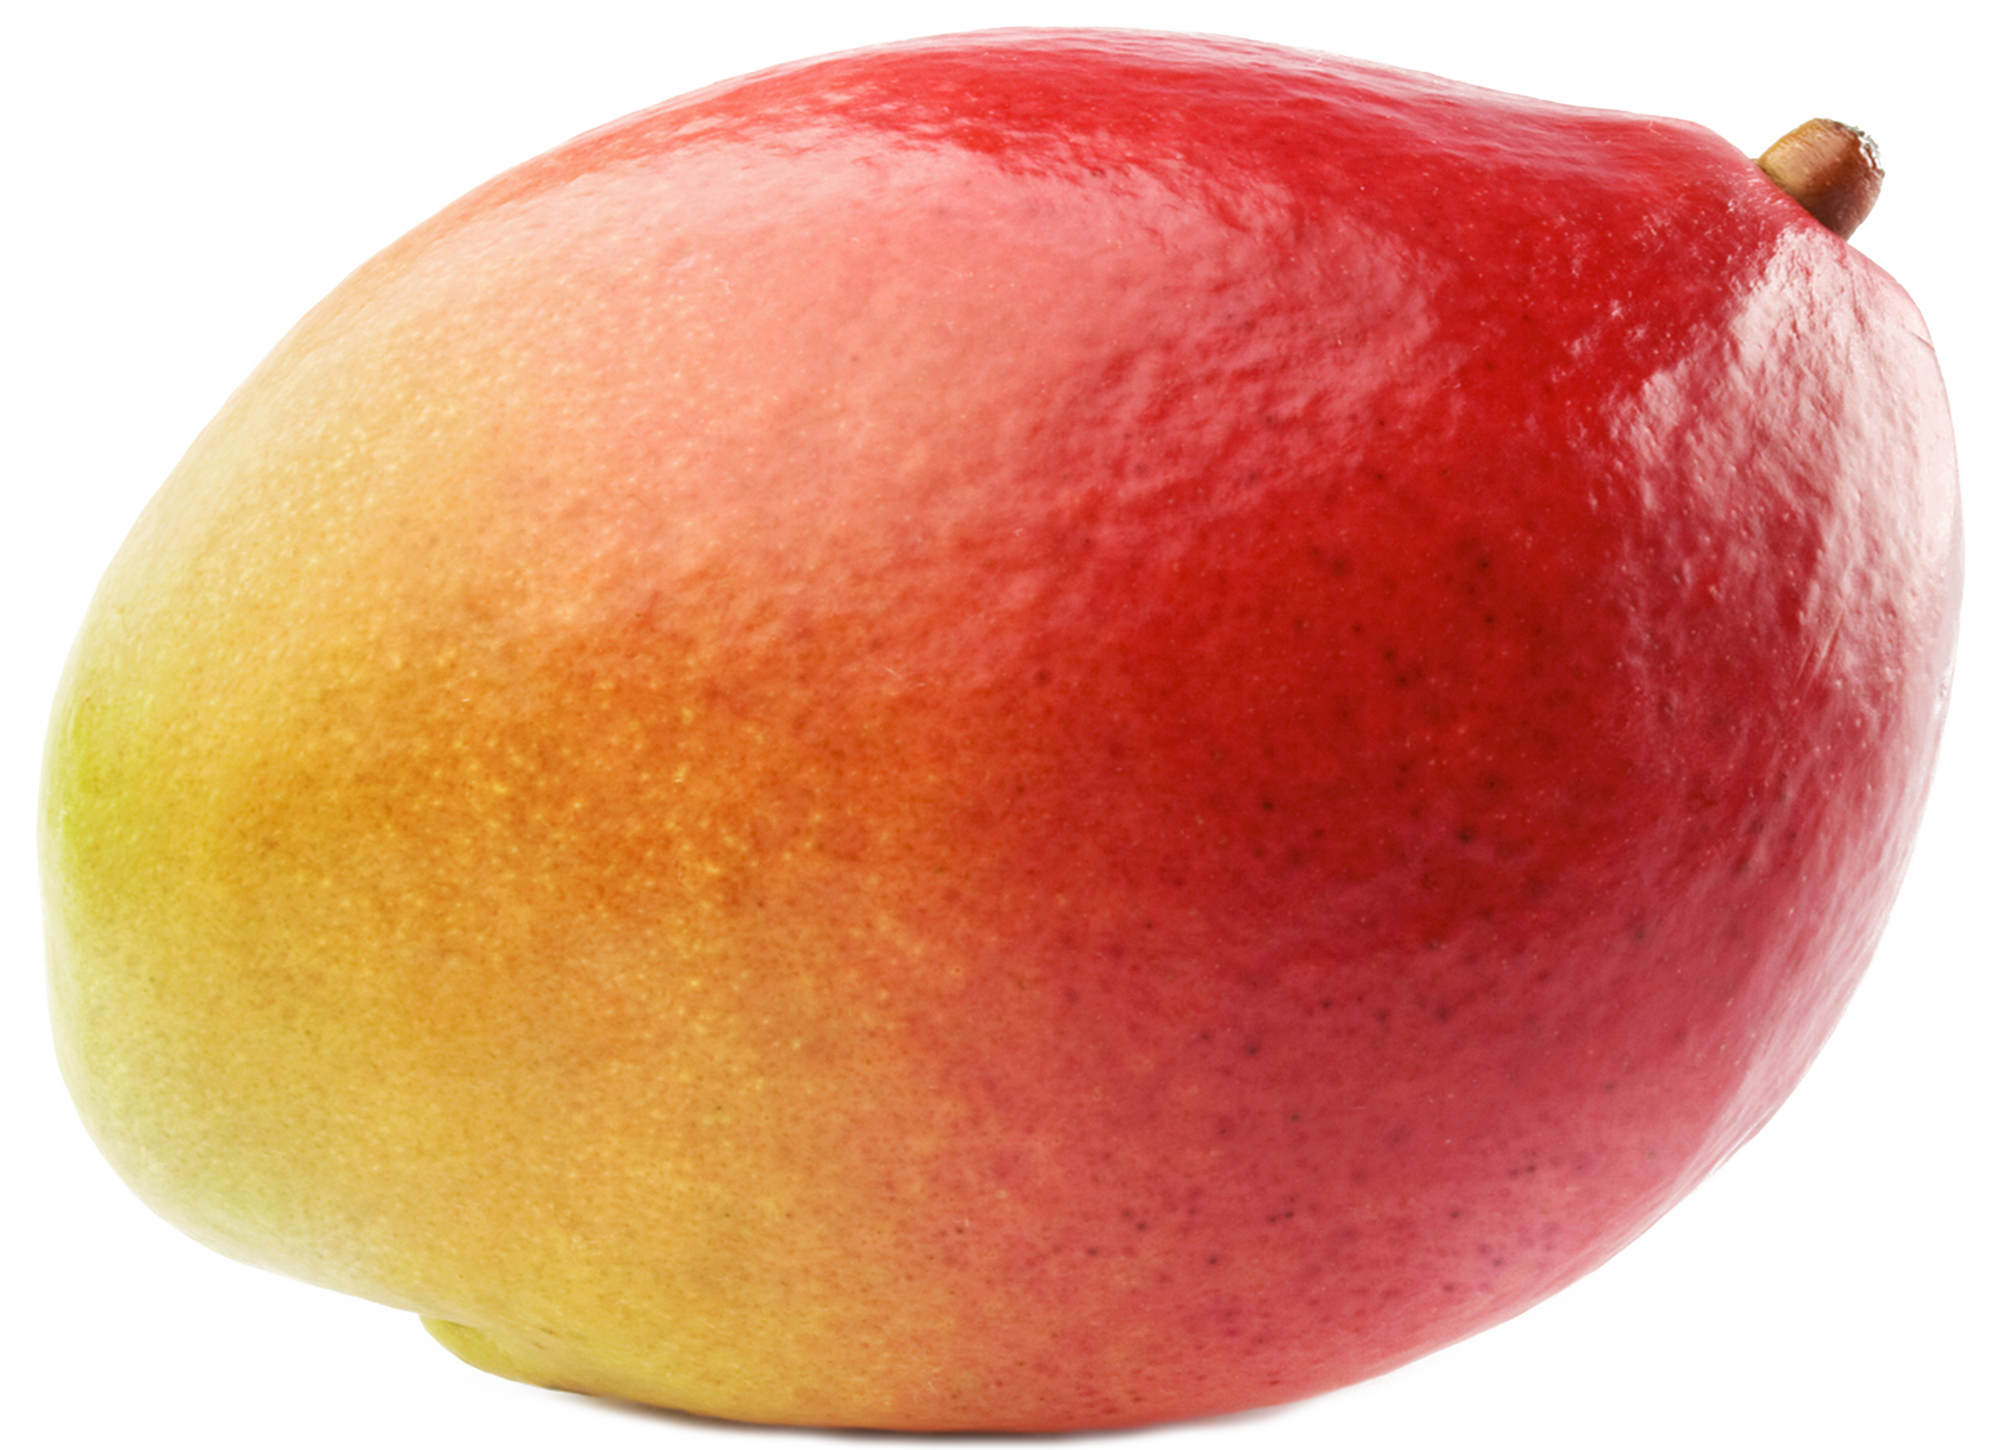 Mango clipart three. Png images free download